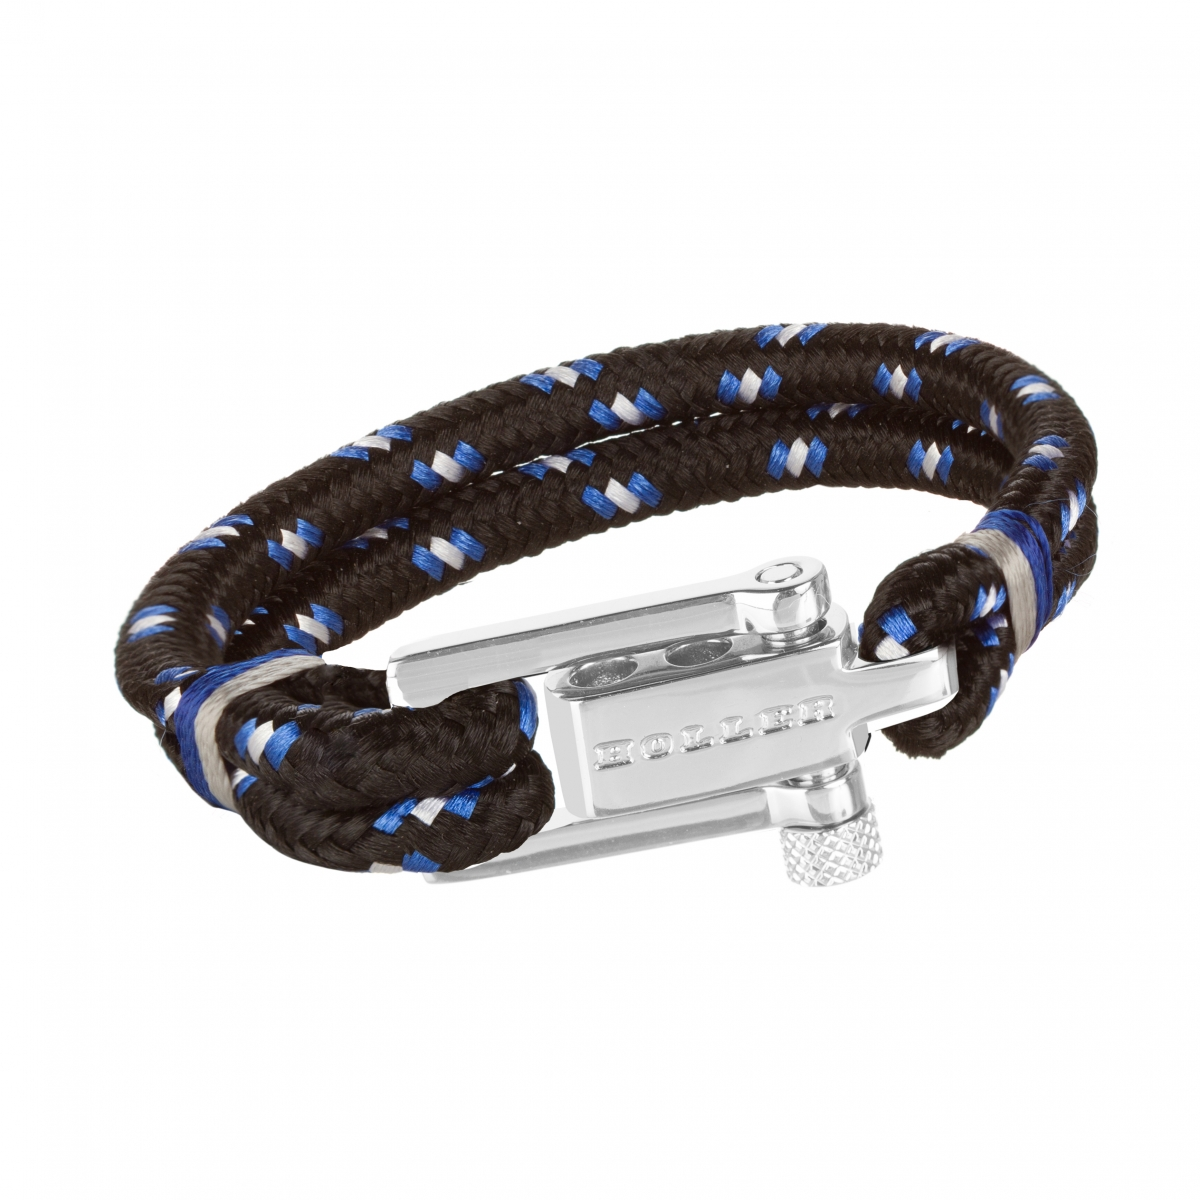 Mancha  Silver Polished U-Buckle / Black and White Paracord Bracelet